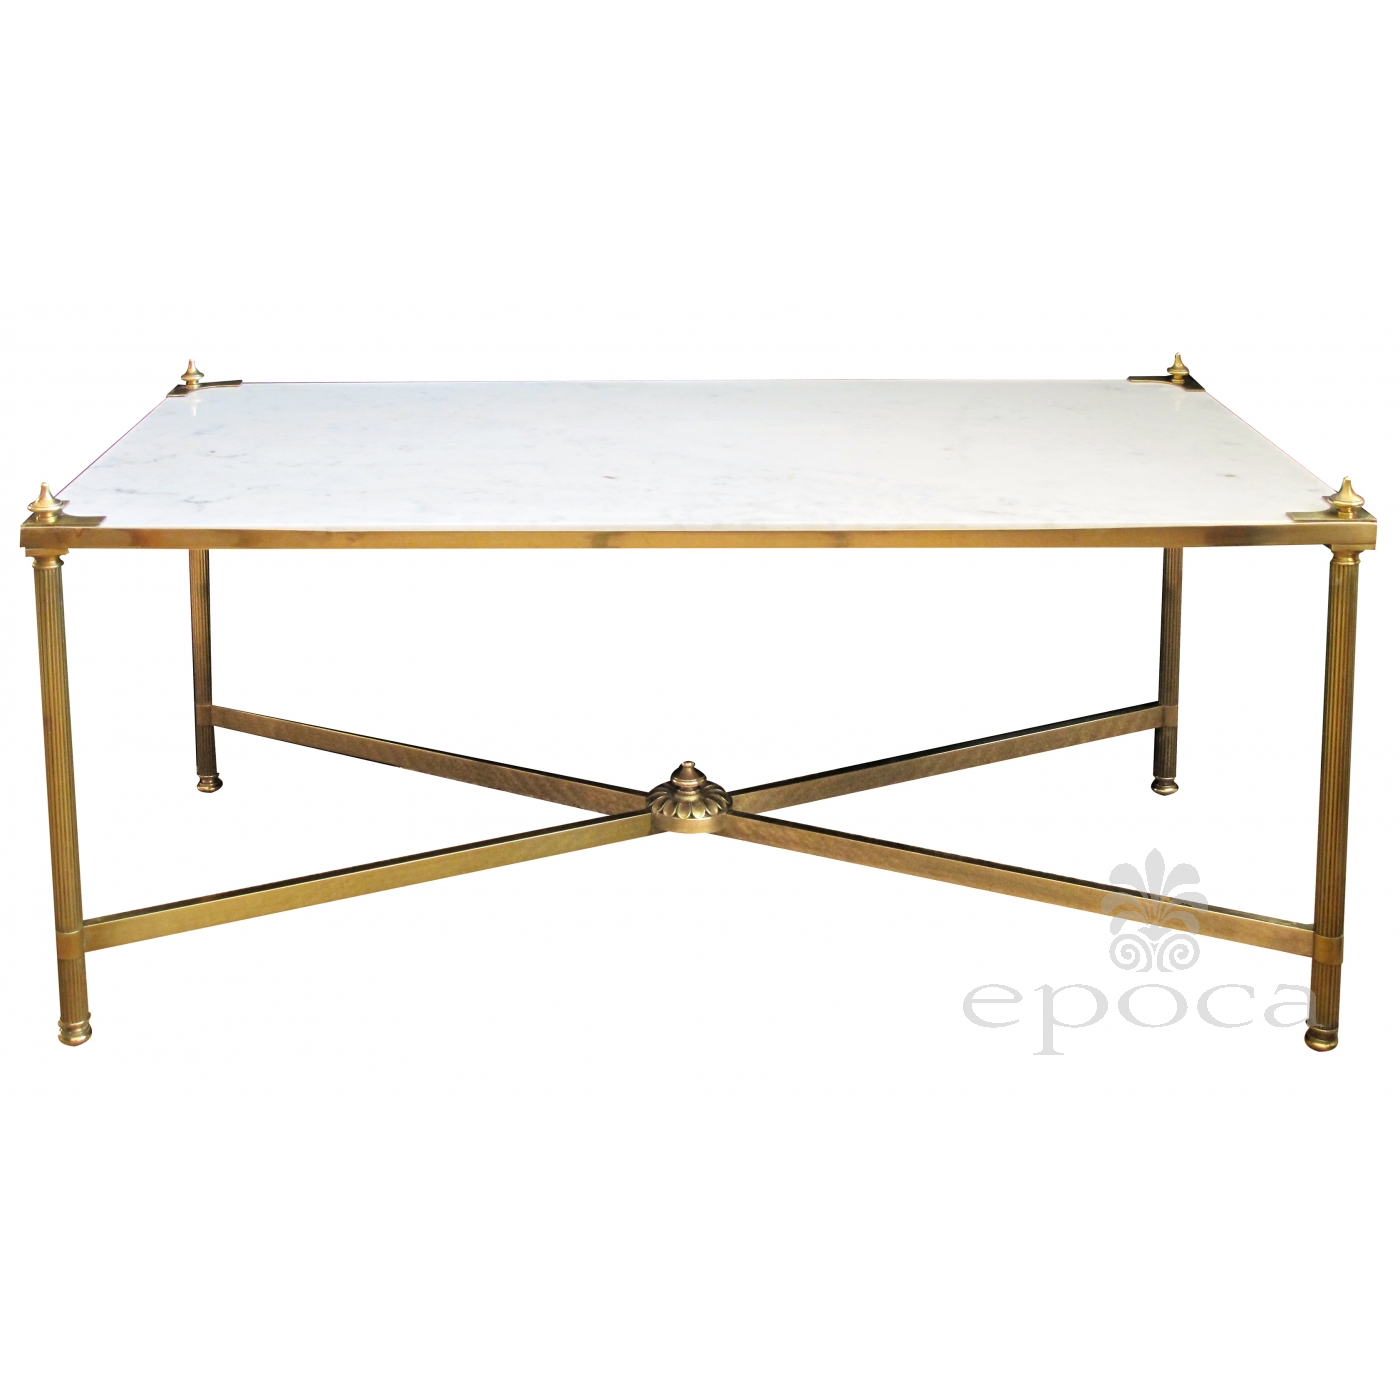 Elegant Brass And Glass Coffee Table: An Elegant French Maison Jansen Mid-century Neo-classical